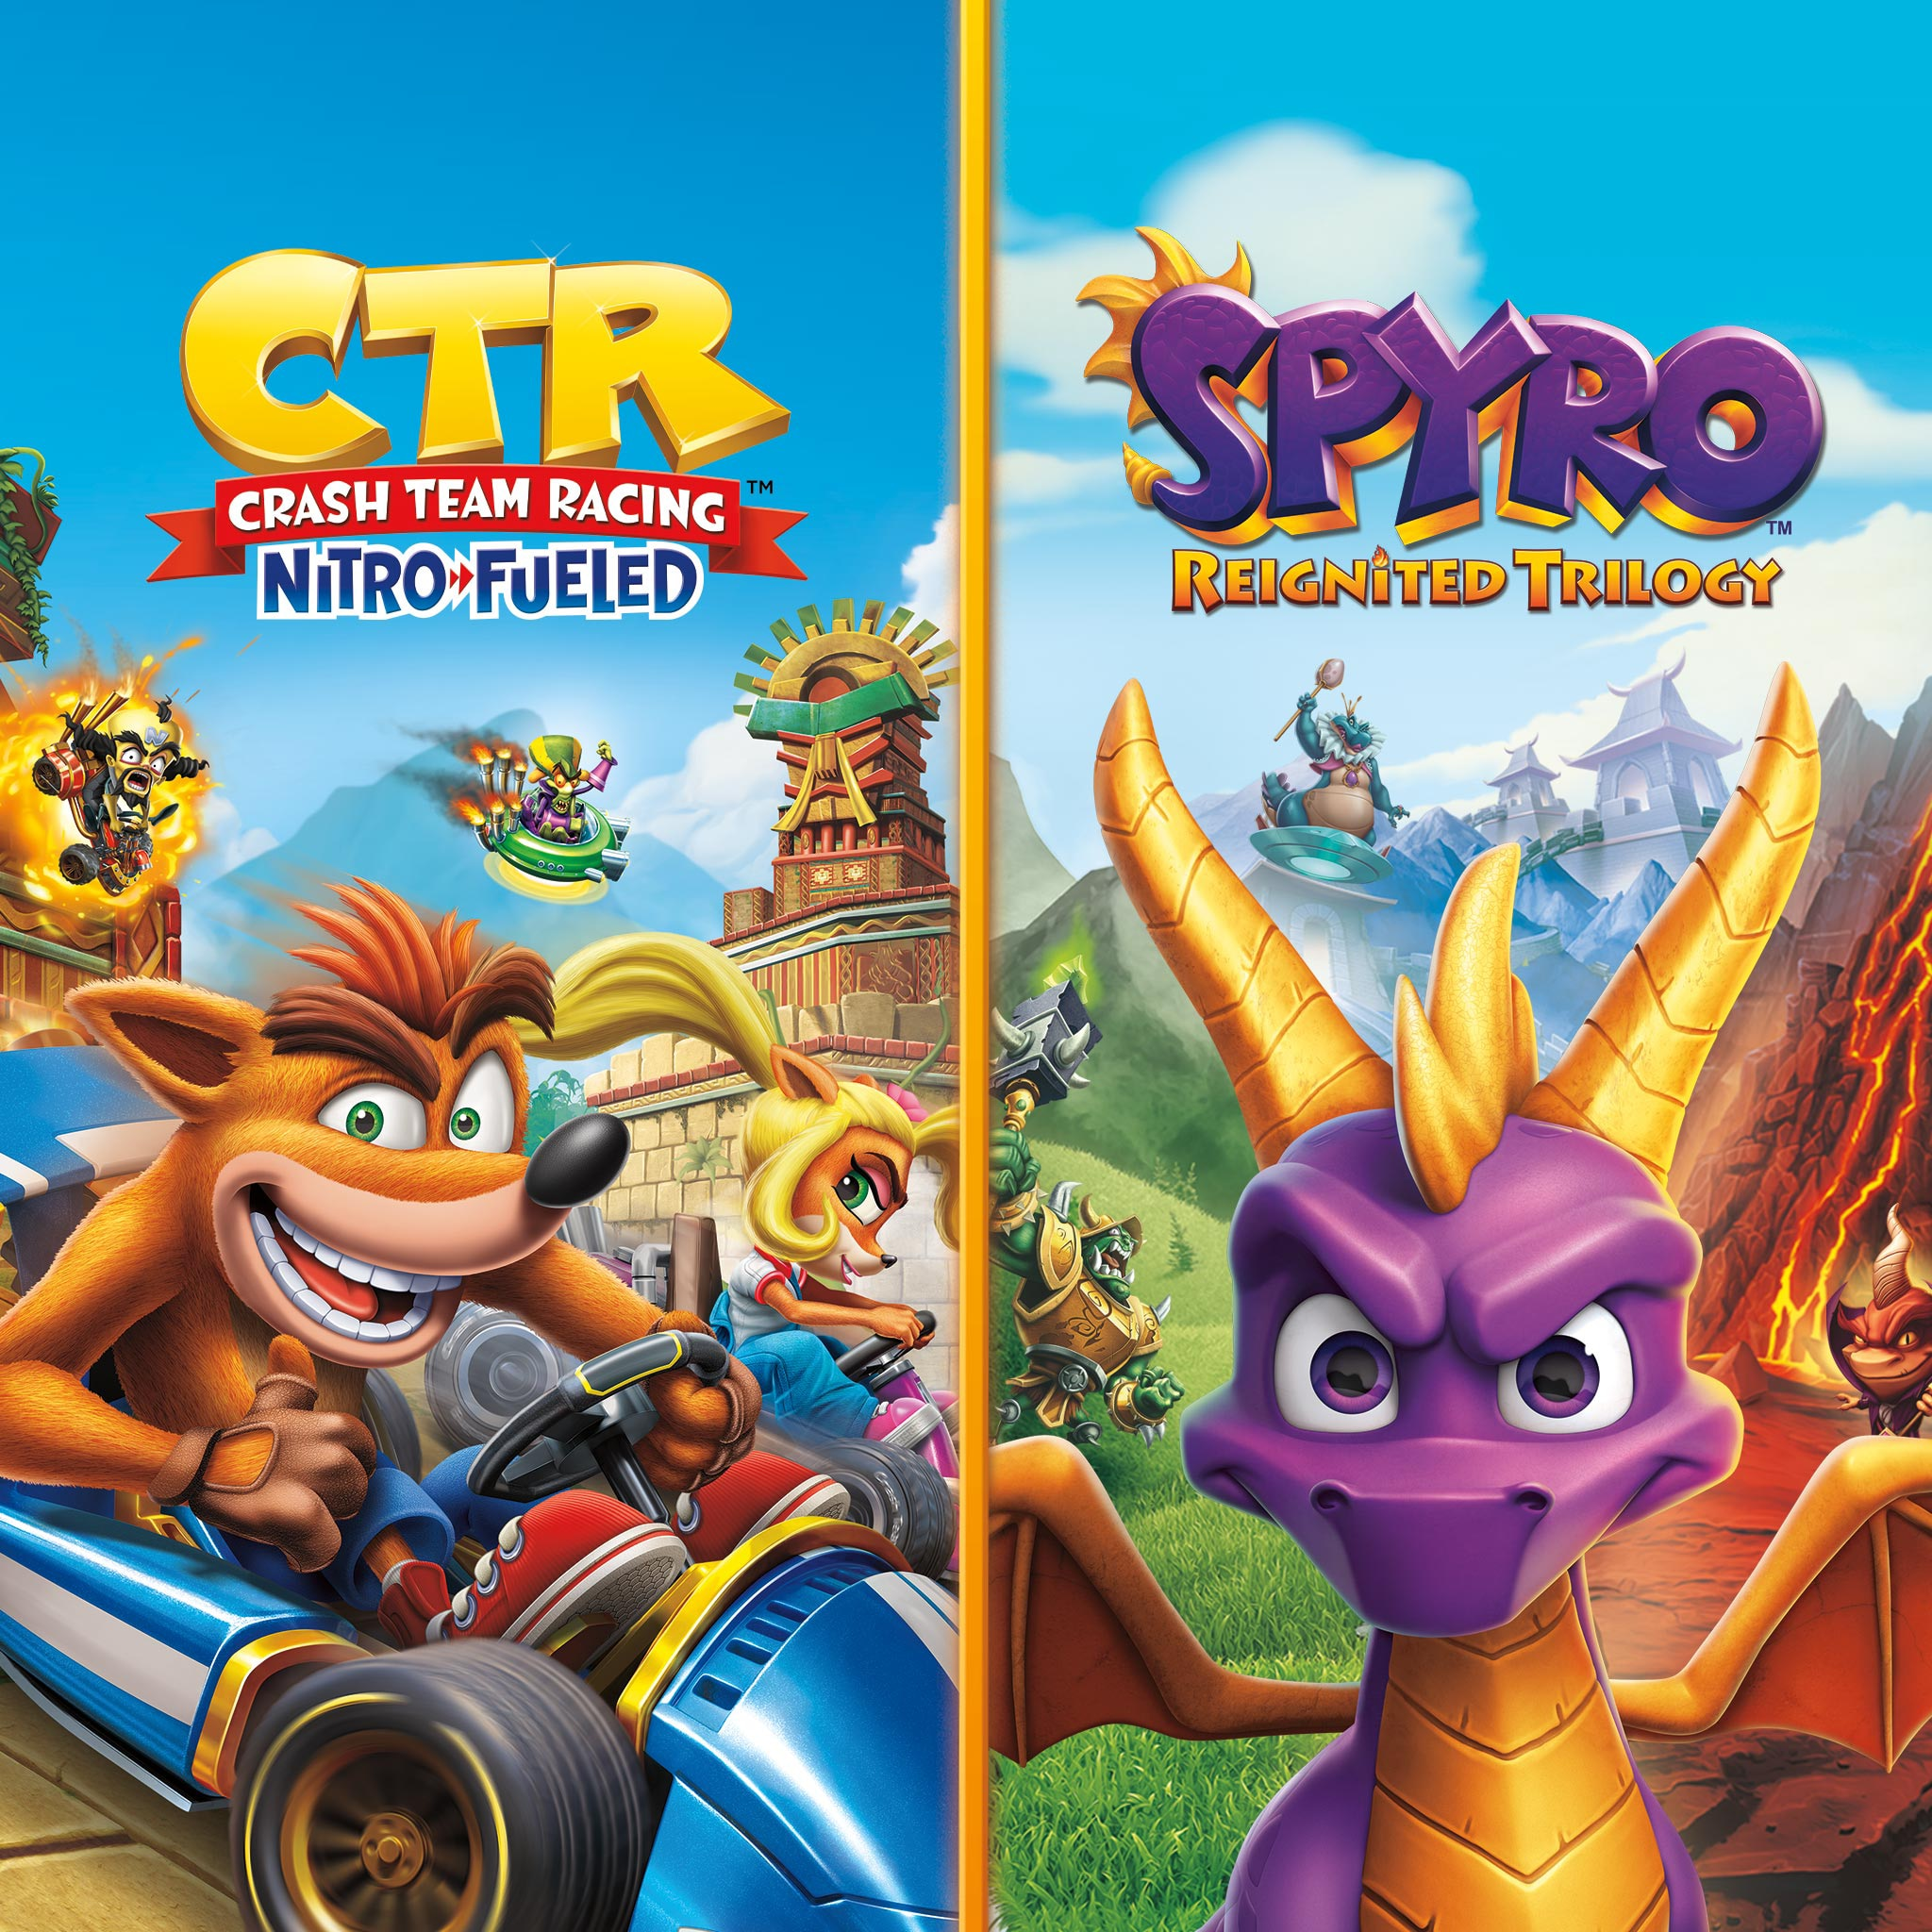 Набор Crash™ Team Racing Nitro-Fueled + Spyro™